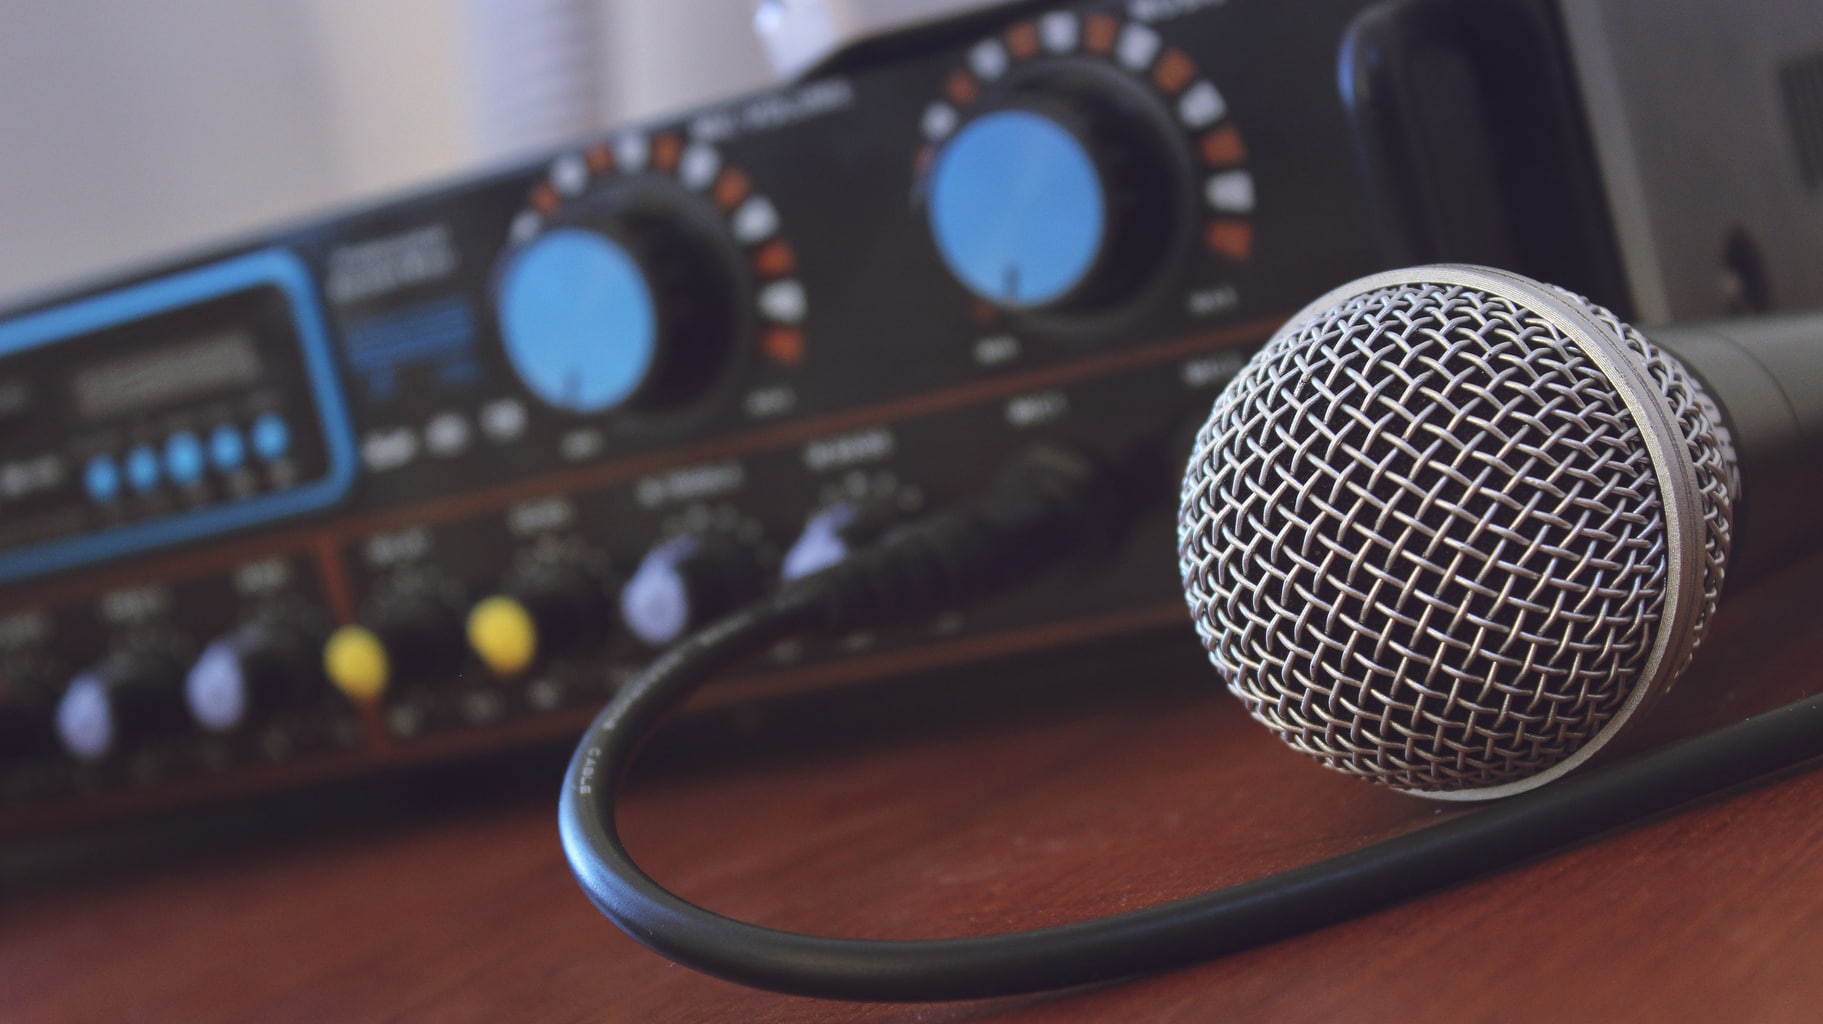 A microphone is set on a table, plugged into amplifier